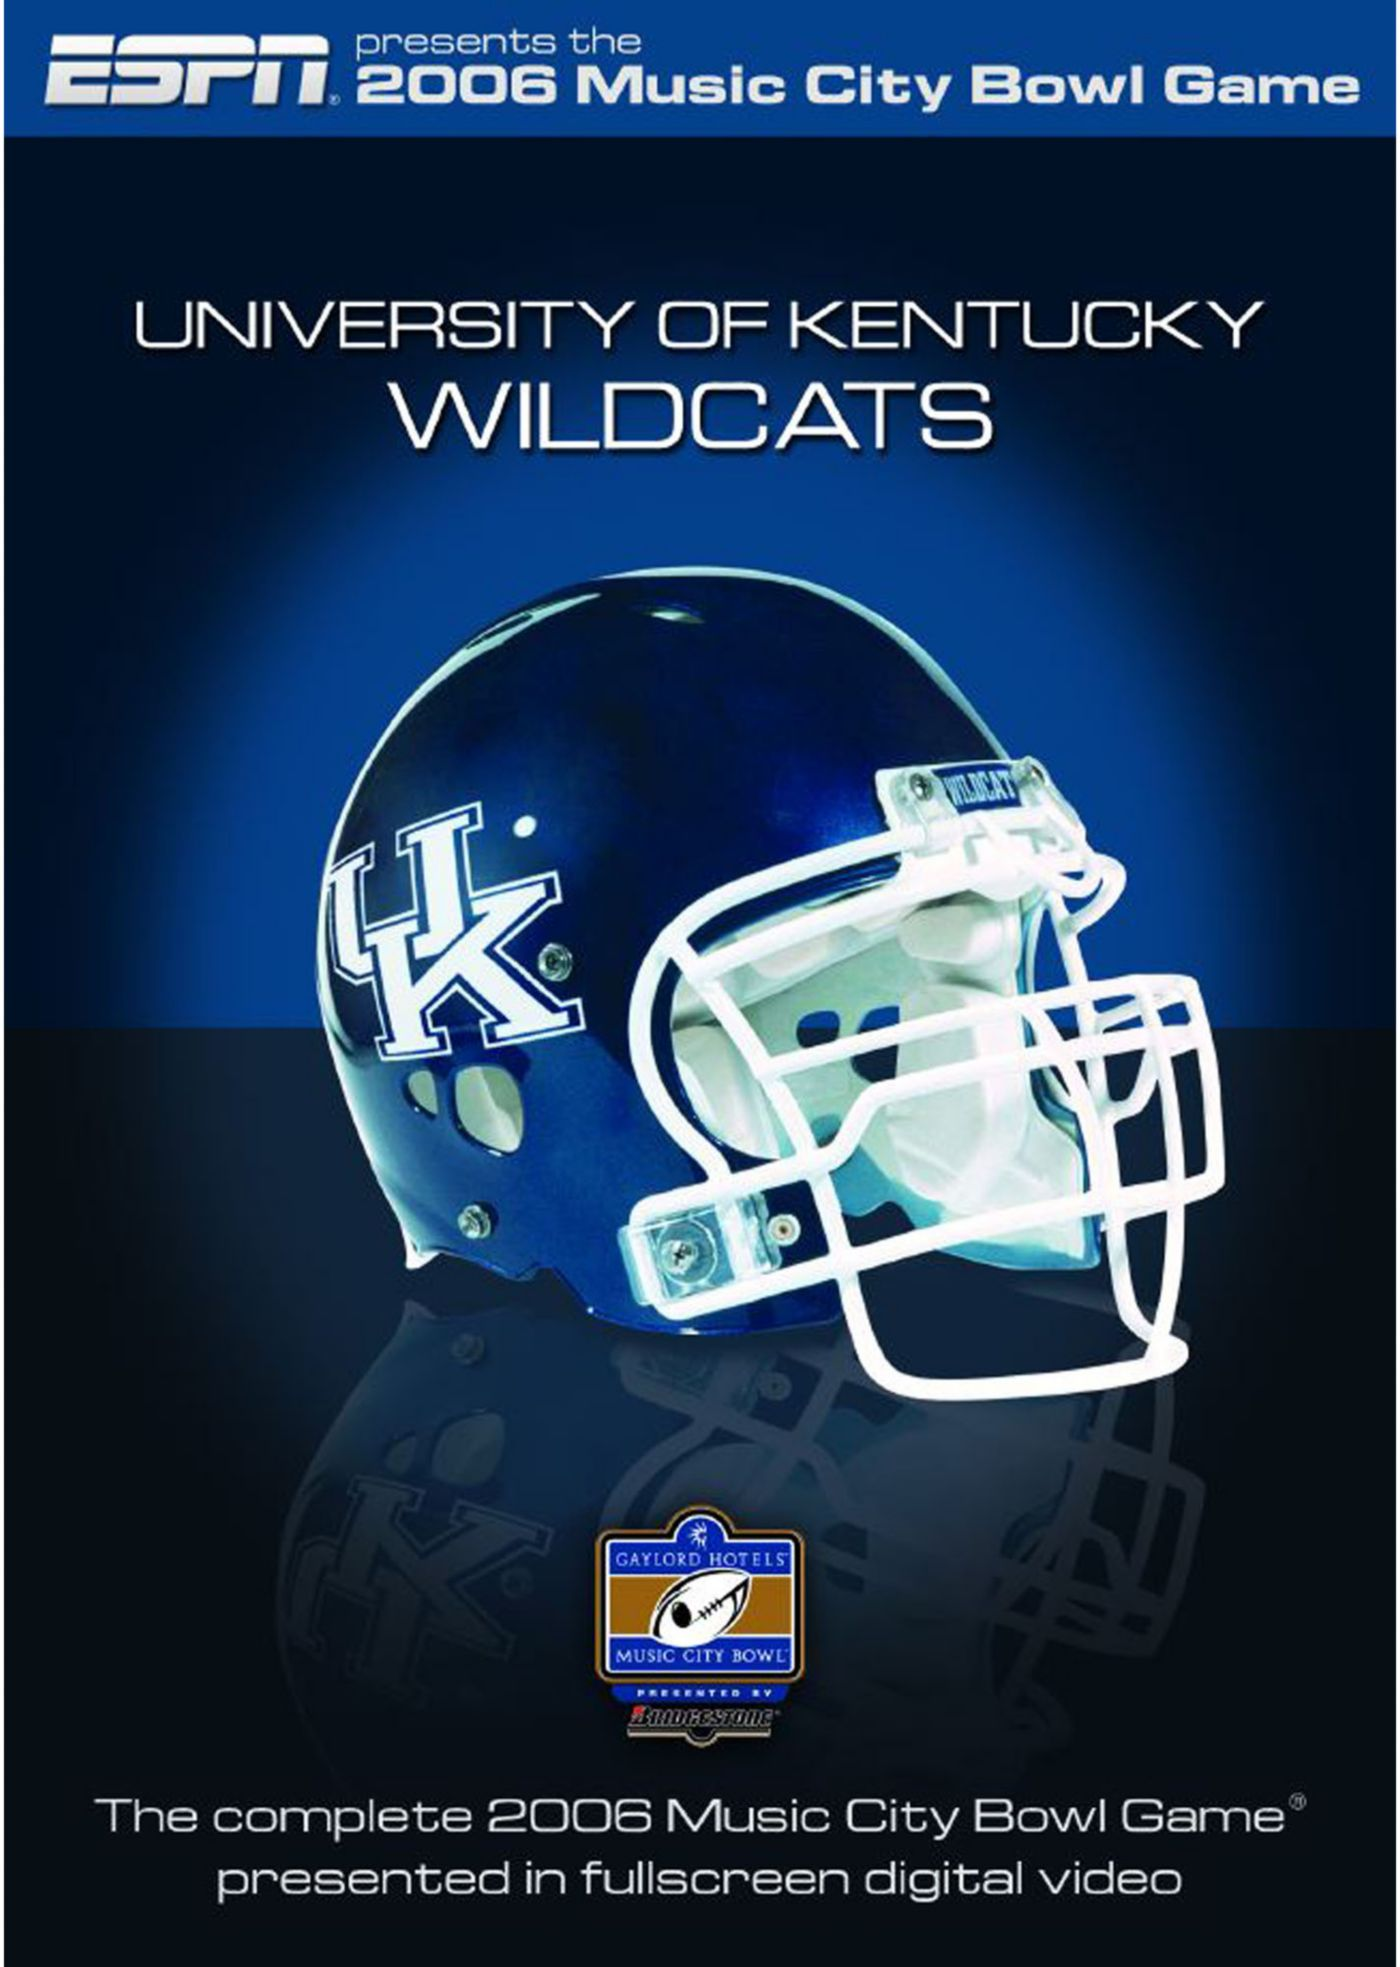 2006 Gaylord Hotels Music City Bowl Game DVD